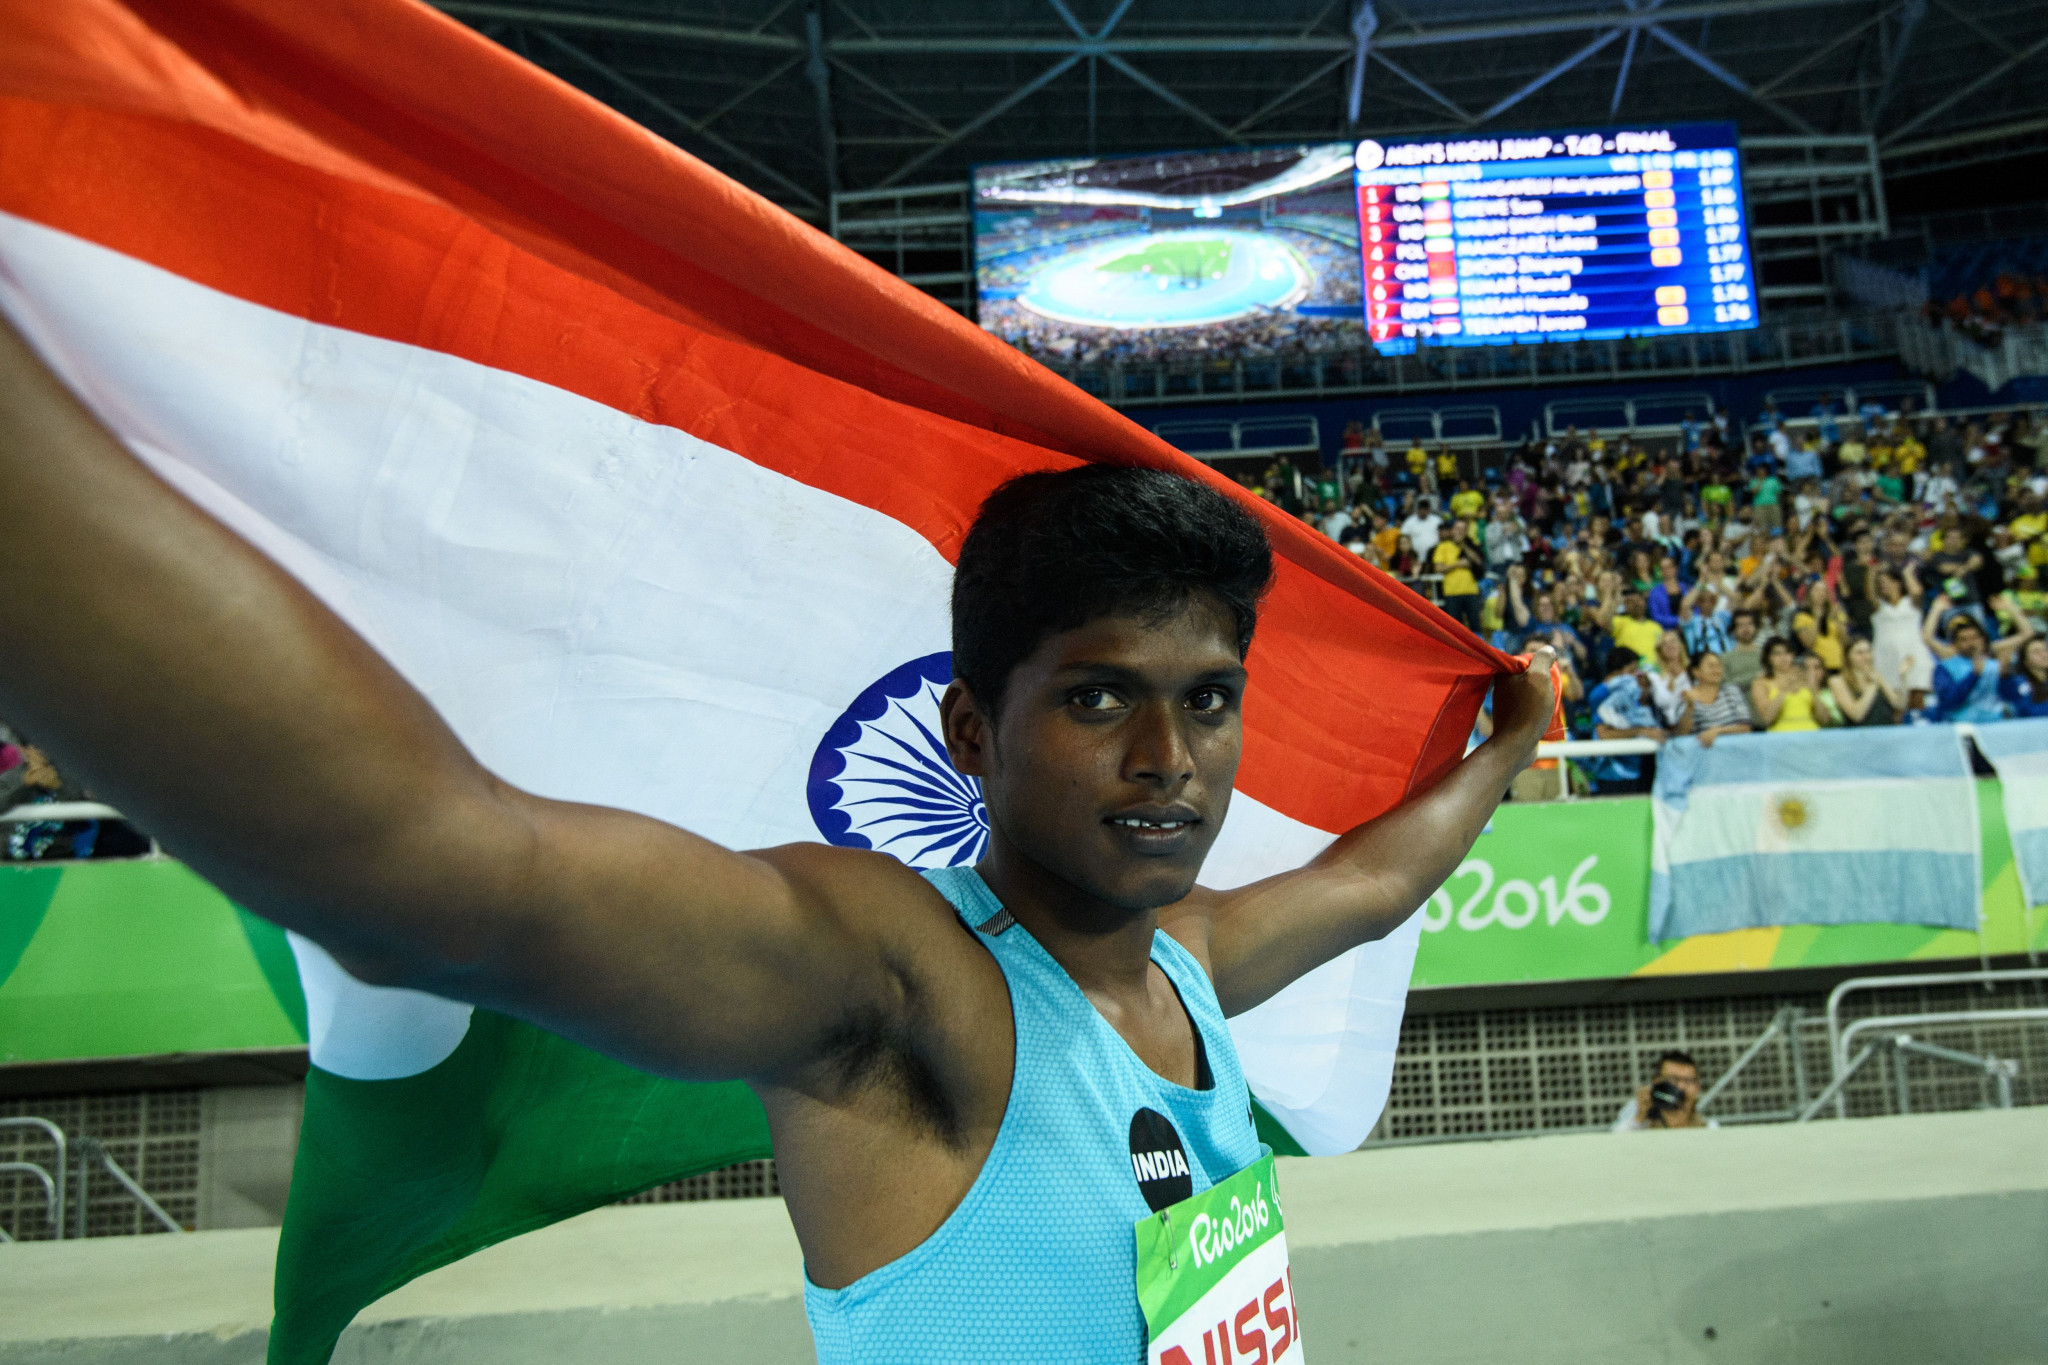 Trials to select India's Paralympic athletics team postponed due to COVID-19